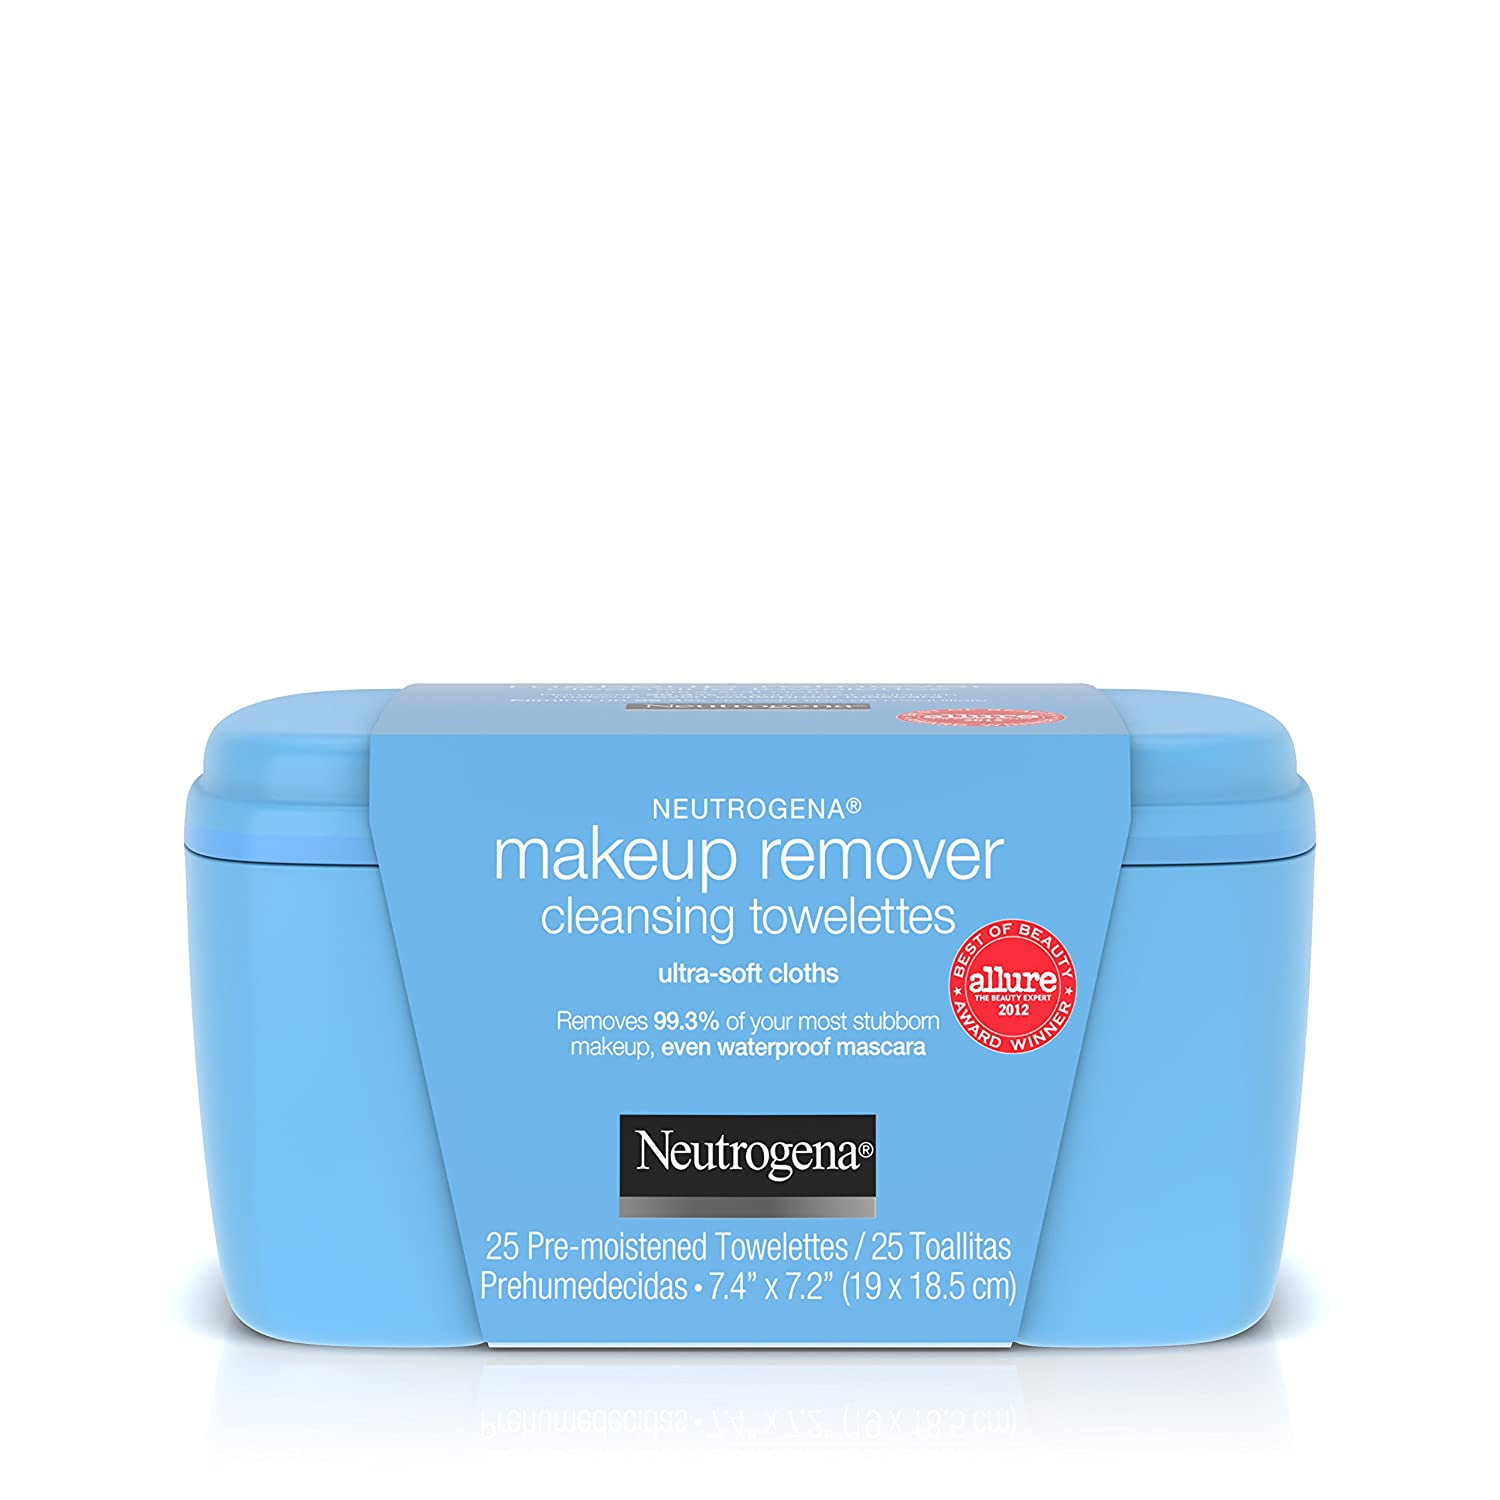 Amazon.com: Neutrogena Make-Up Remover Towelettes 25 Count Ultra-Soft (6 Pack): Beauty